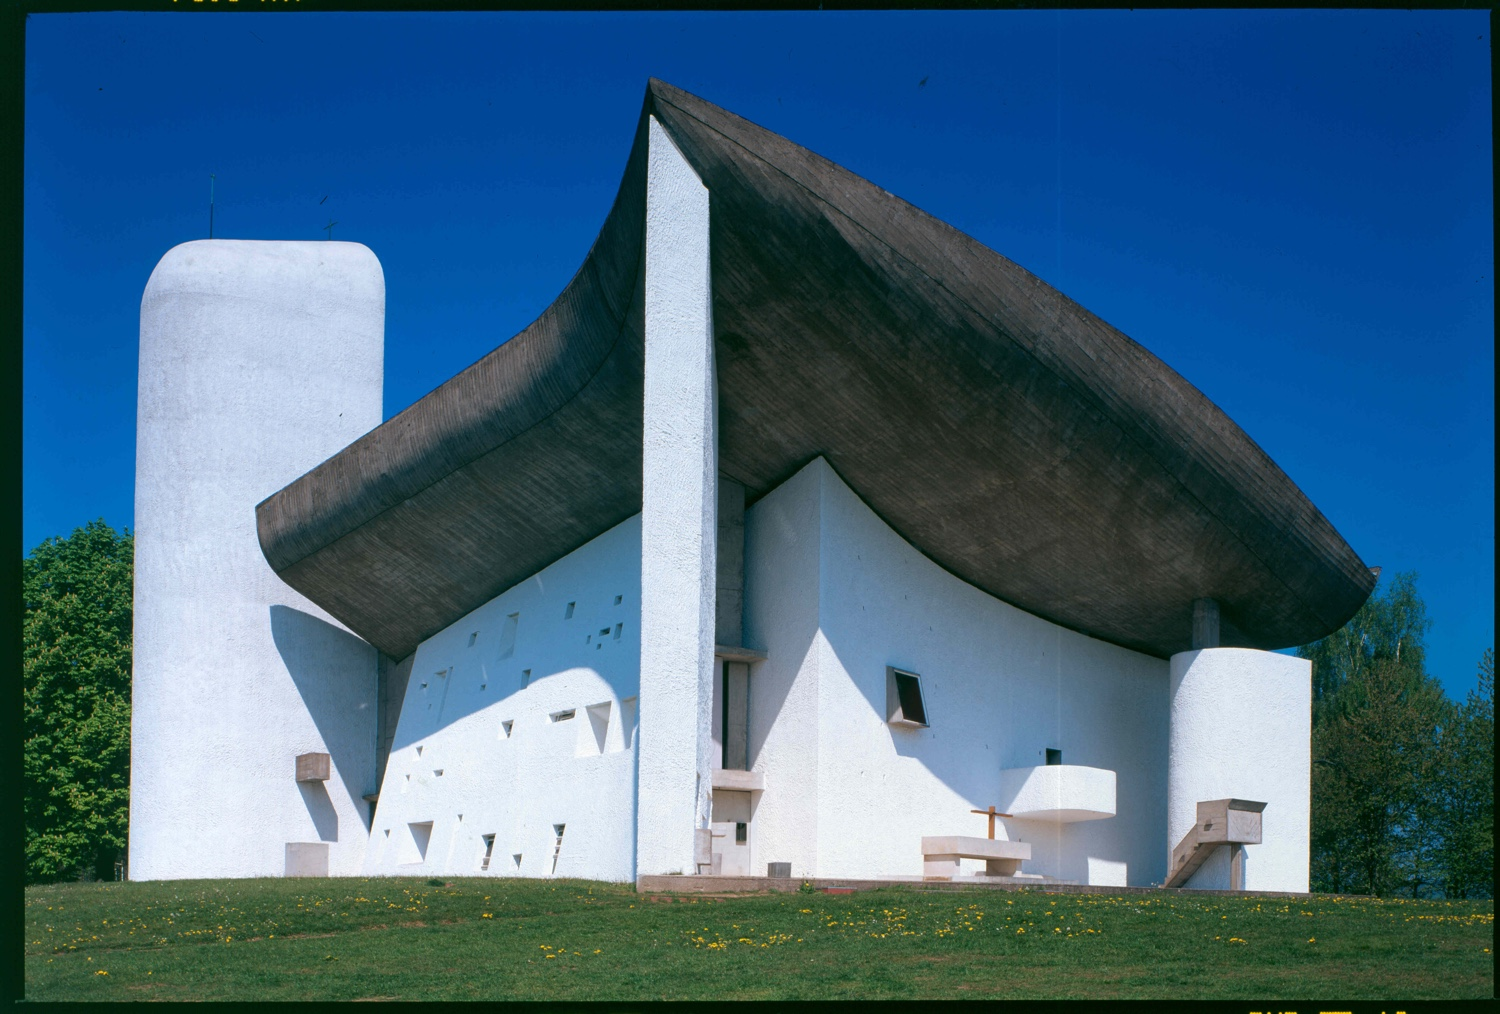 Chapelle notre-Dame du Haut, Ronchamp, France, 1950 - 1955. Photo by Paul Koslowsky © FLC/ADAGP.